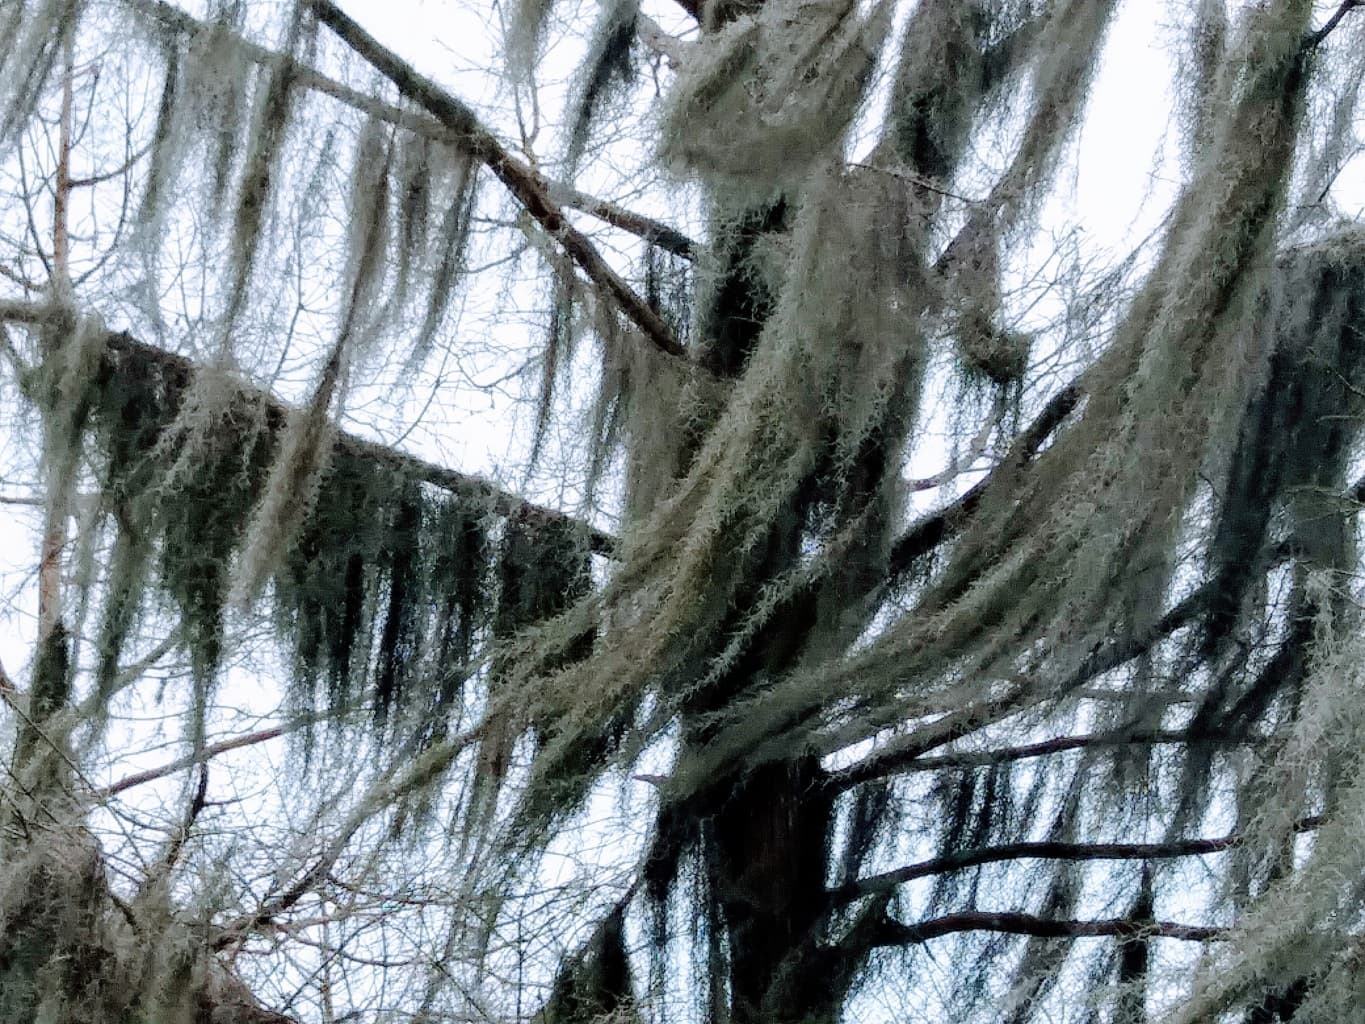 Tree with Spanish moss that resembles a ghost ship